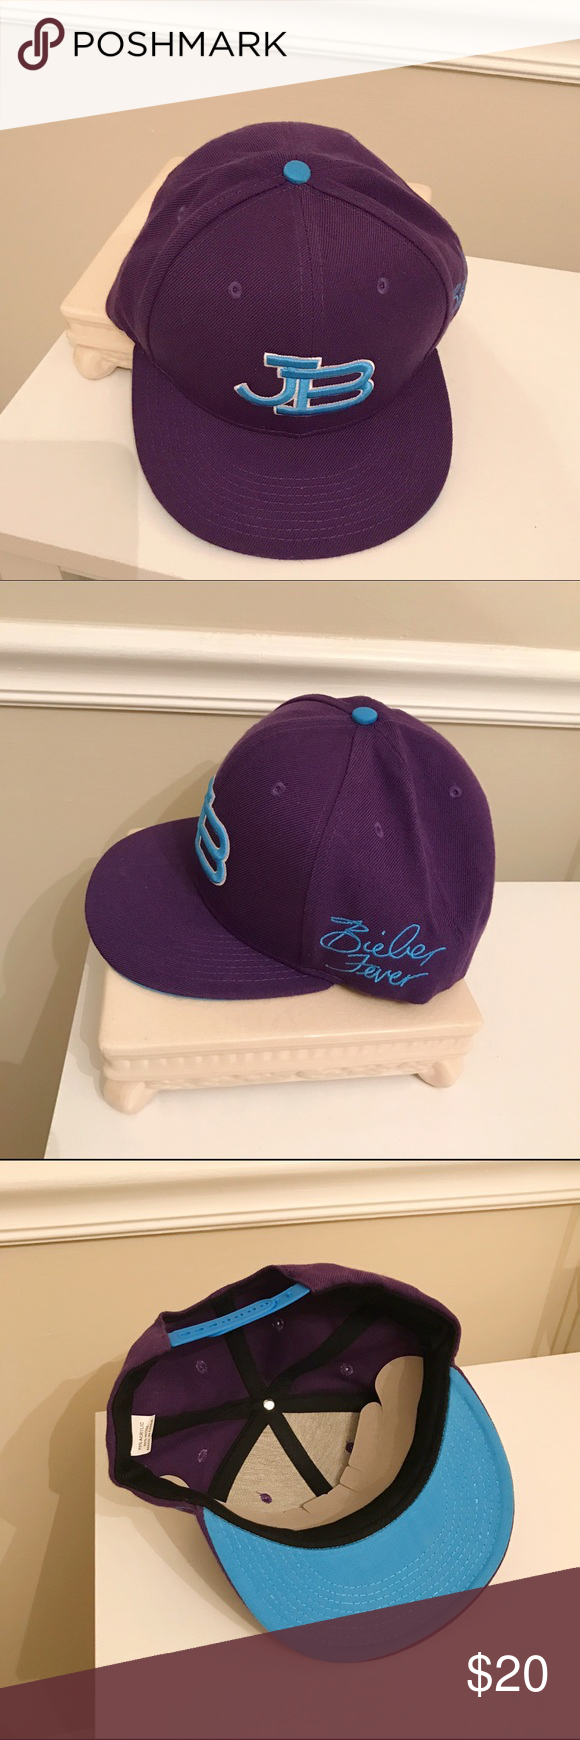 NWOT Justin Bieber SnapBack Cap JB Justin Bieber NWOT Bieber Fever Snapback  Adjustable Flat Brim Purple and Blue Hat. Came from a batch of leftover  concert ... 0b87a52b3c5f